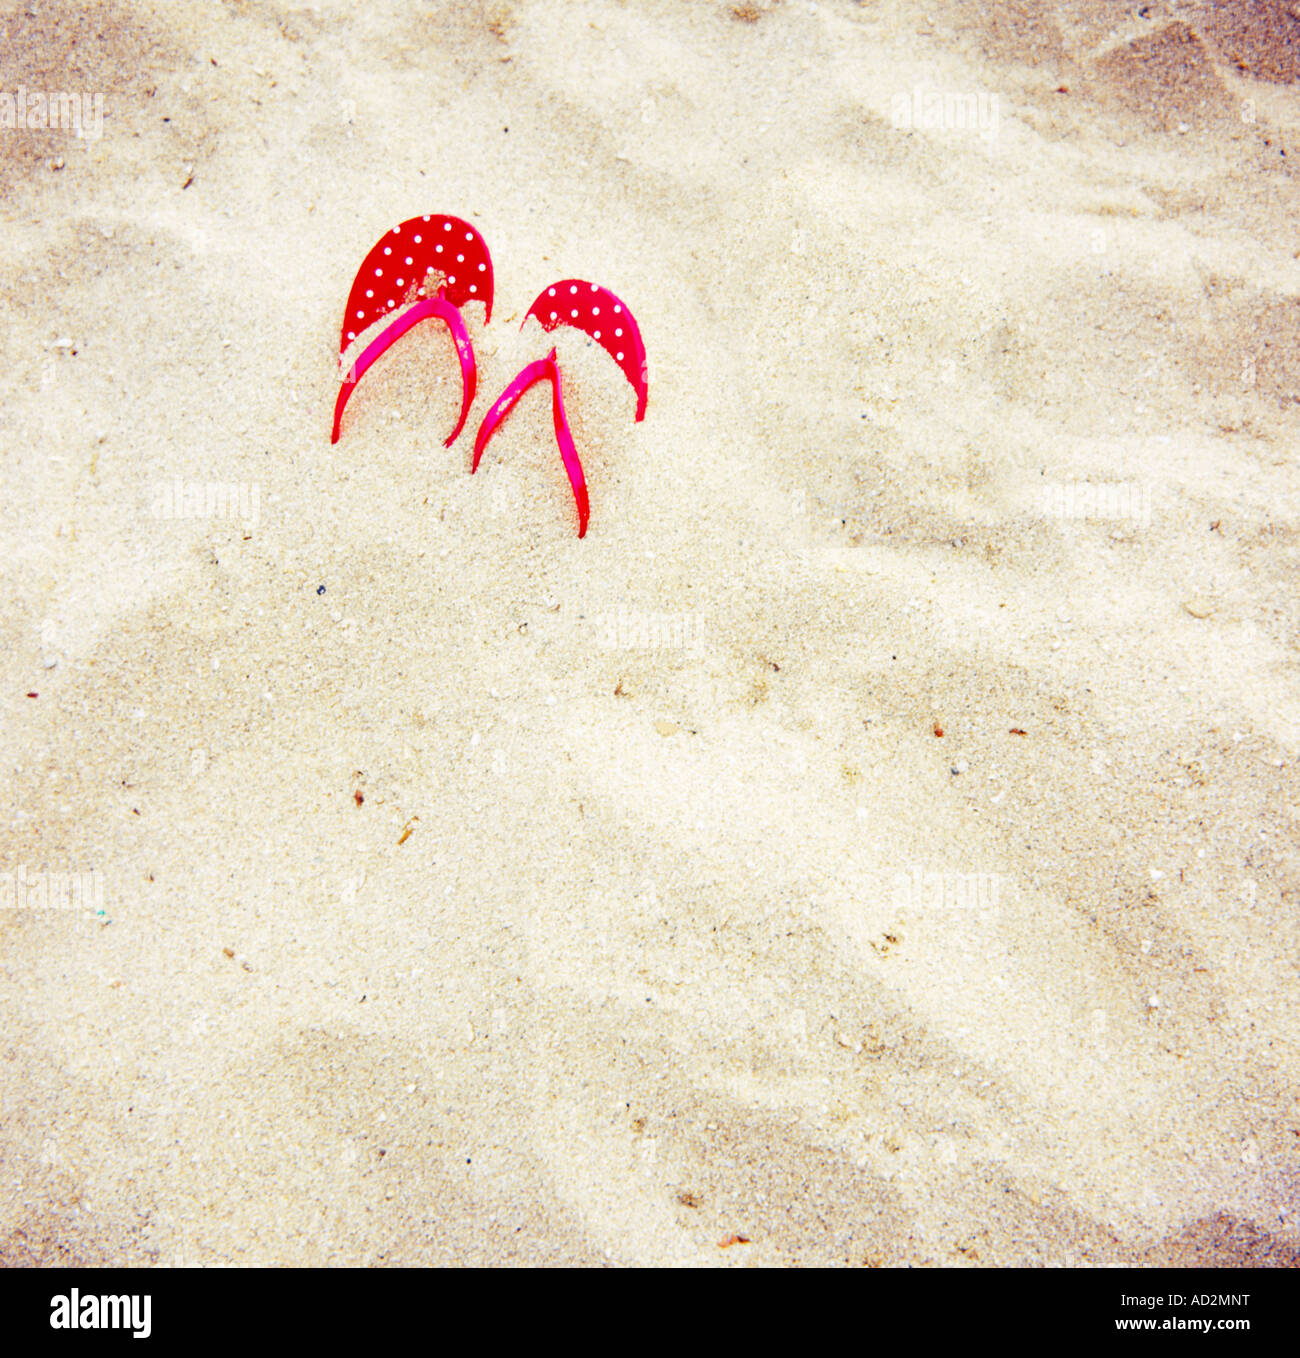 Sandales sur la plage Photo Stock